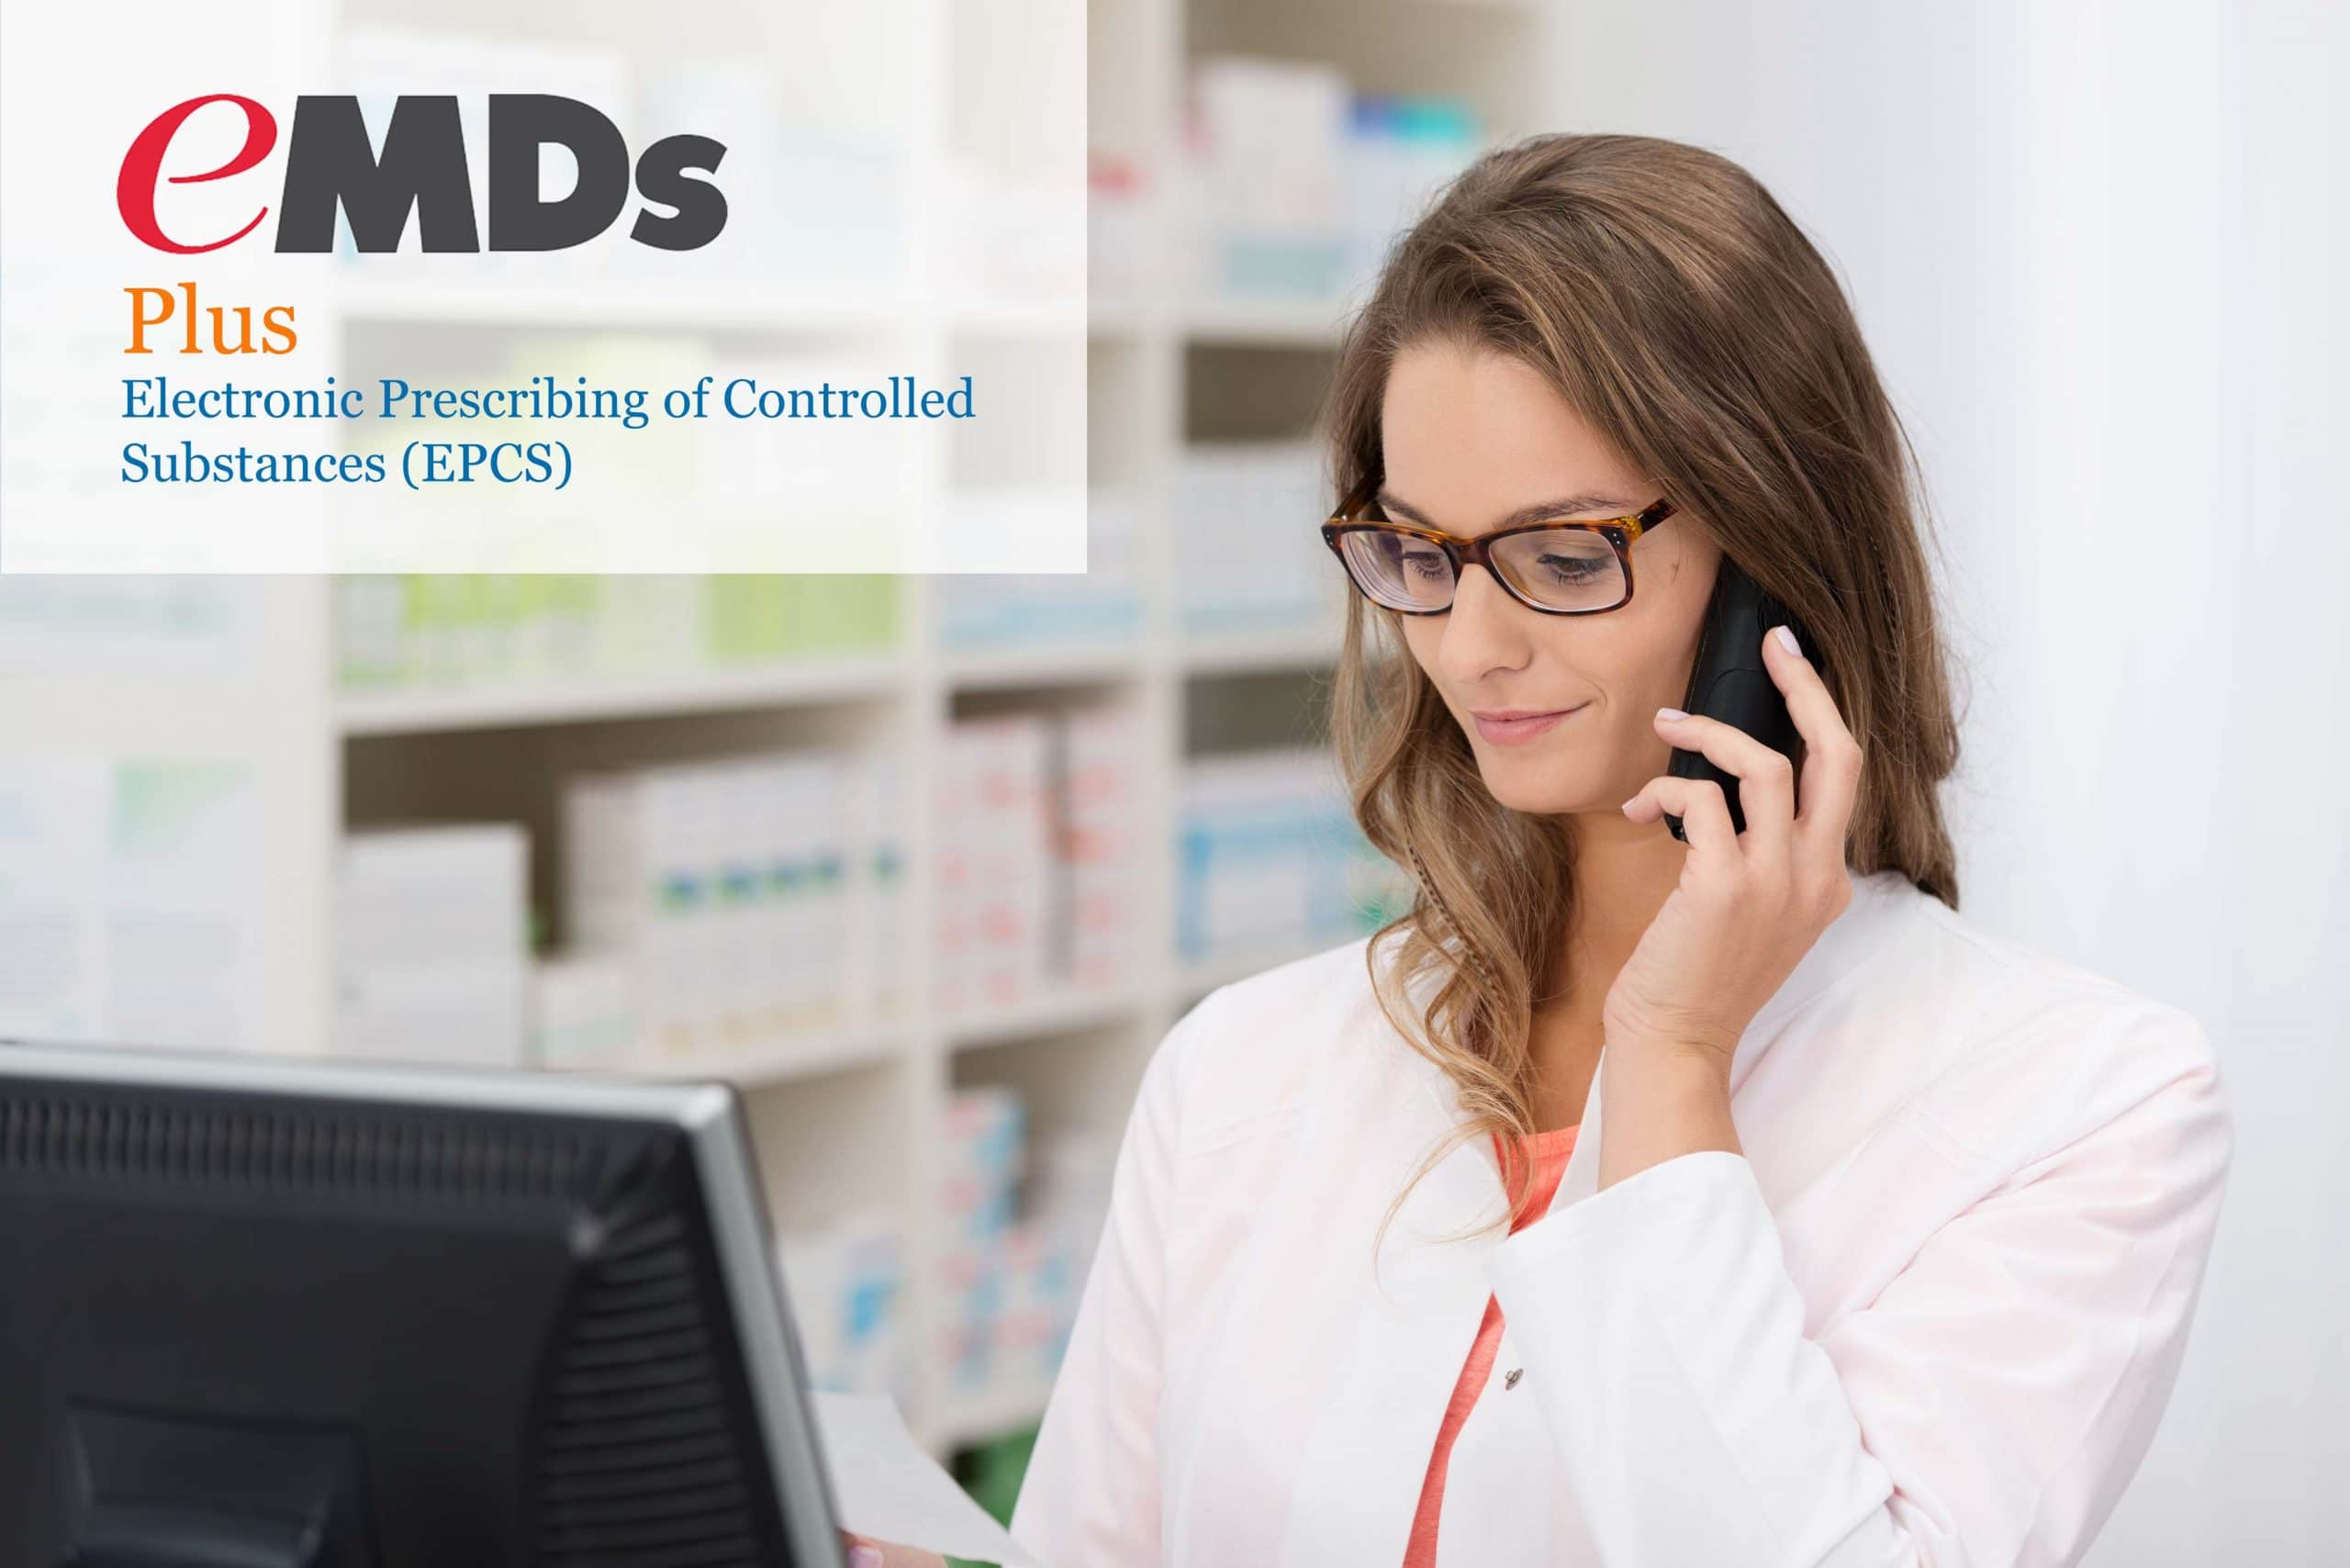 Electronic Prescribing Controlled Substances